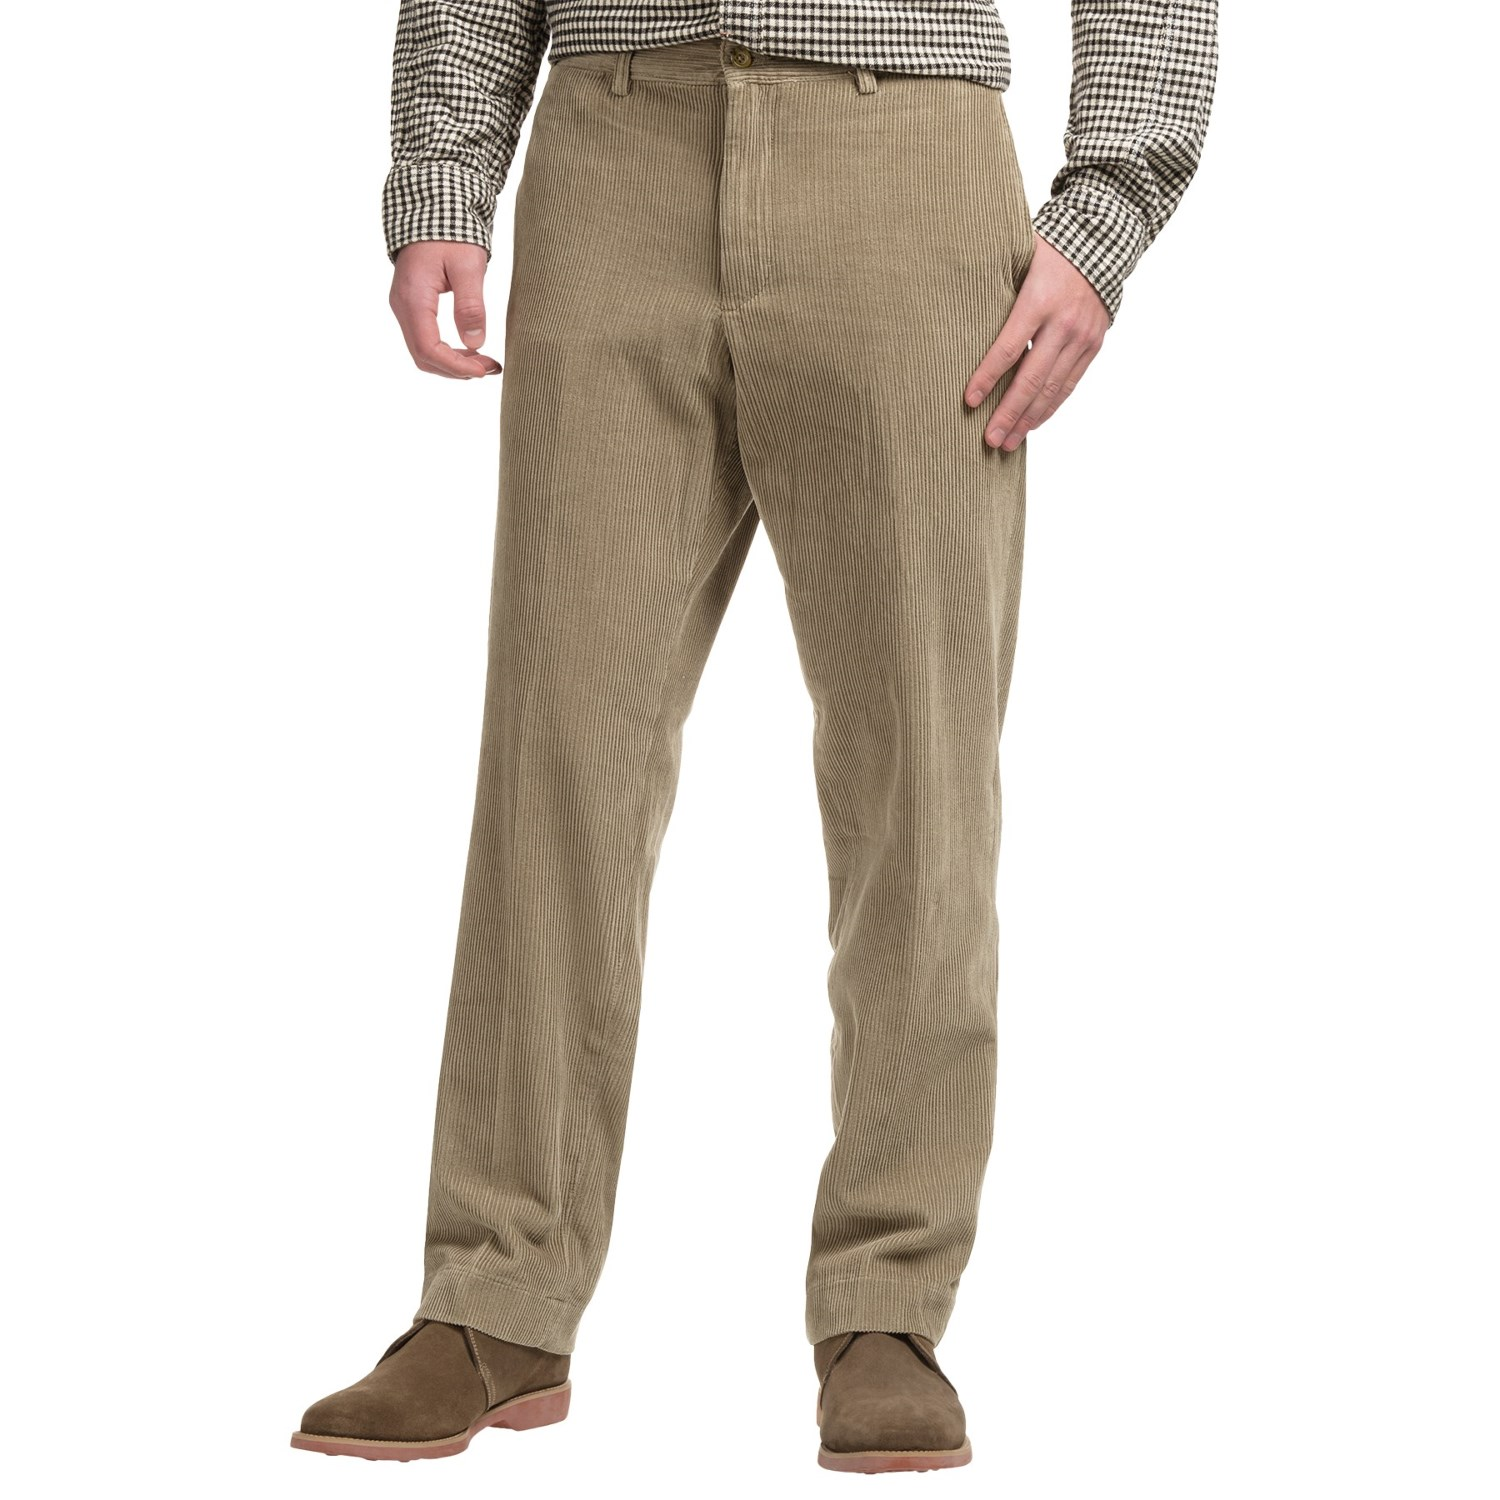 Shop Mountain Khakis collection of corduroy pants to experience stylish and comfortable stretch fabric to be paired with wedges, boots, or flops.